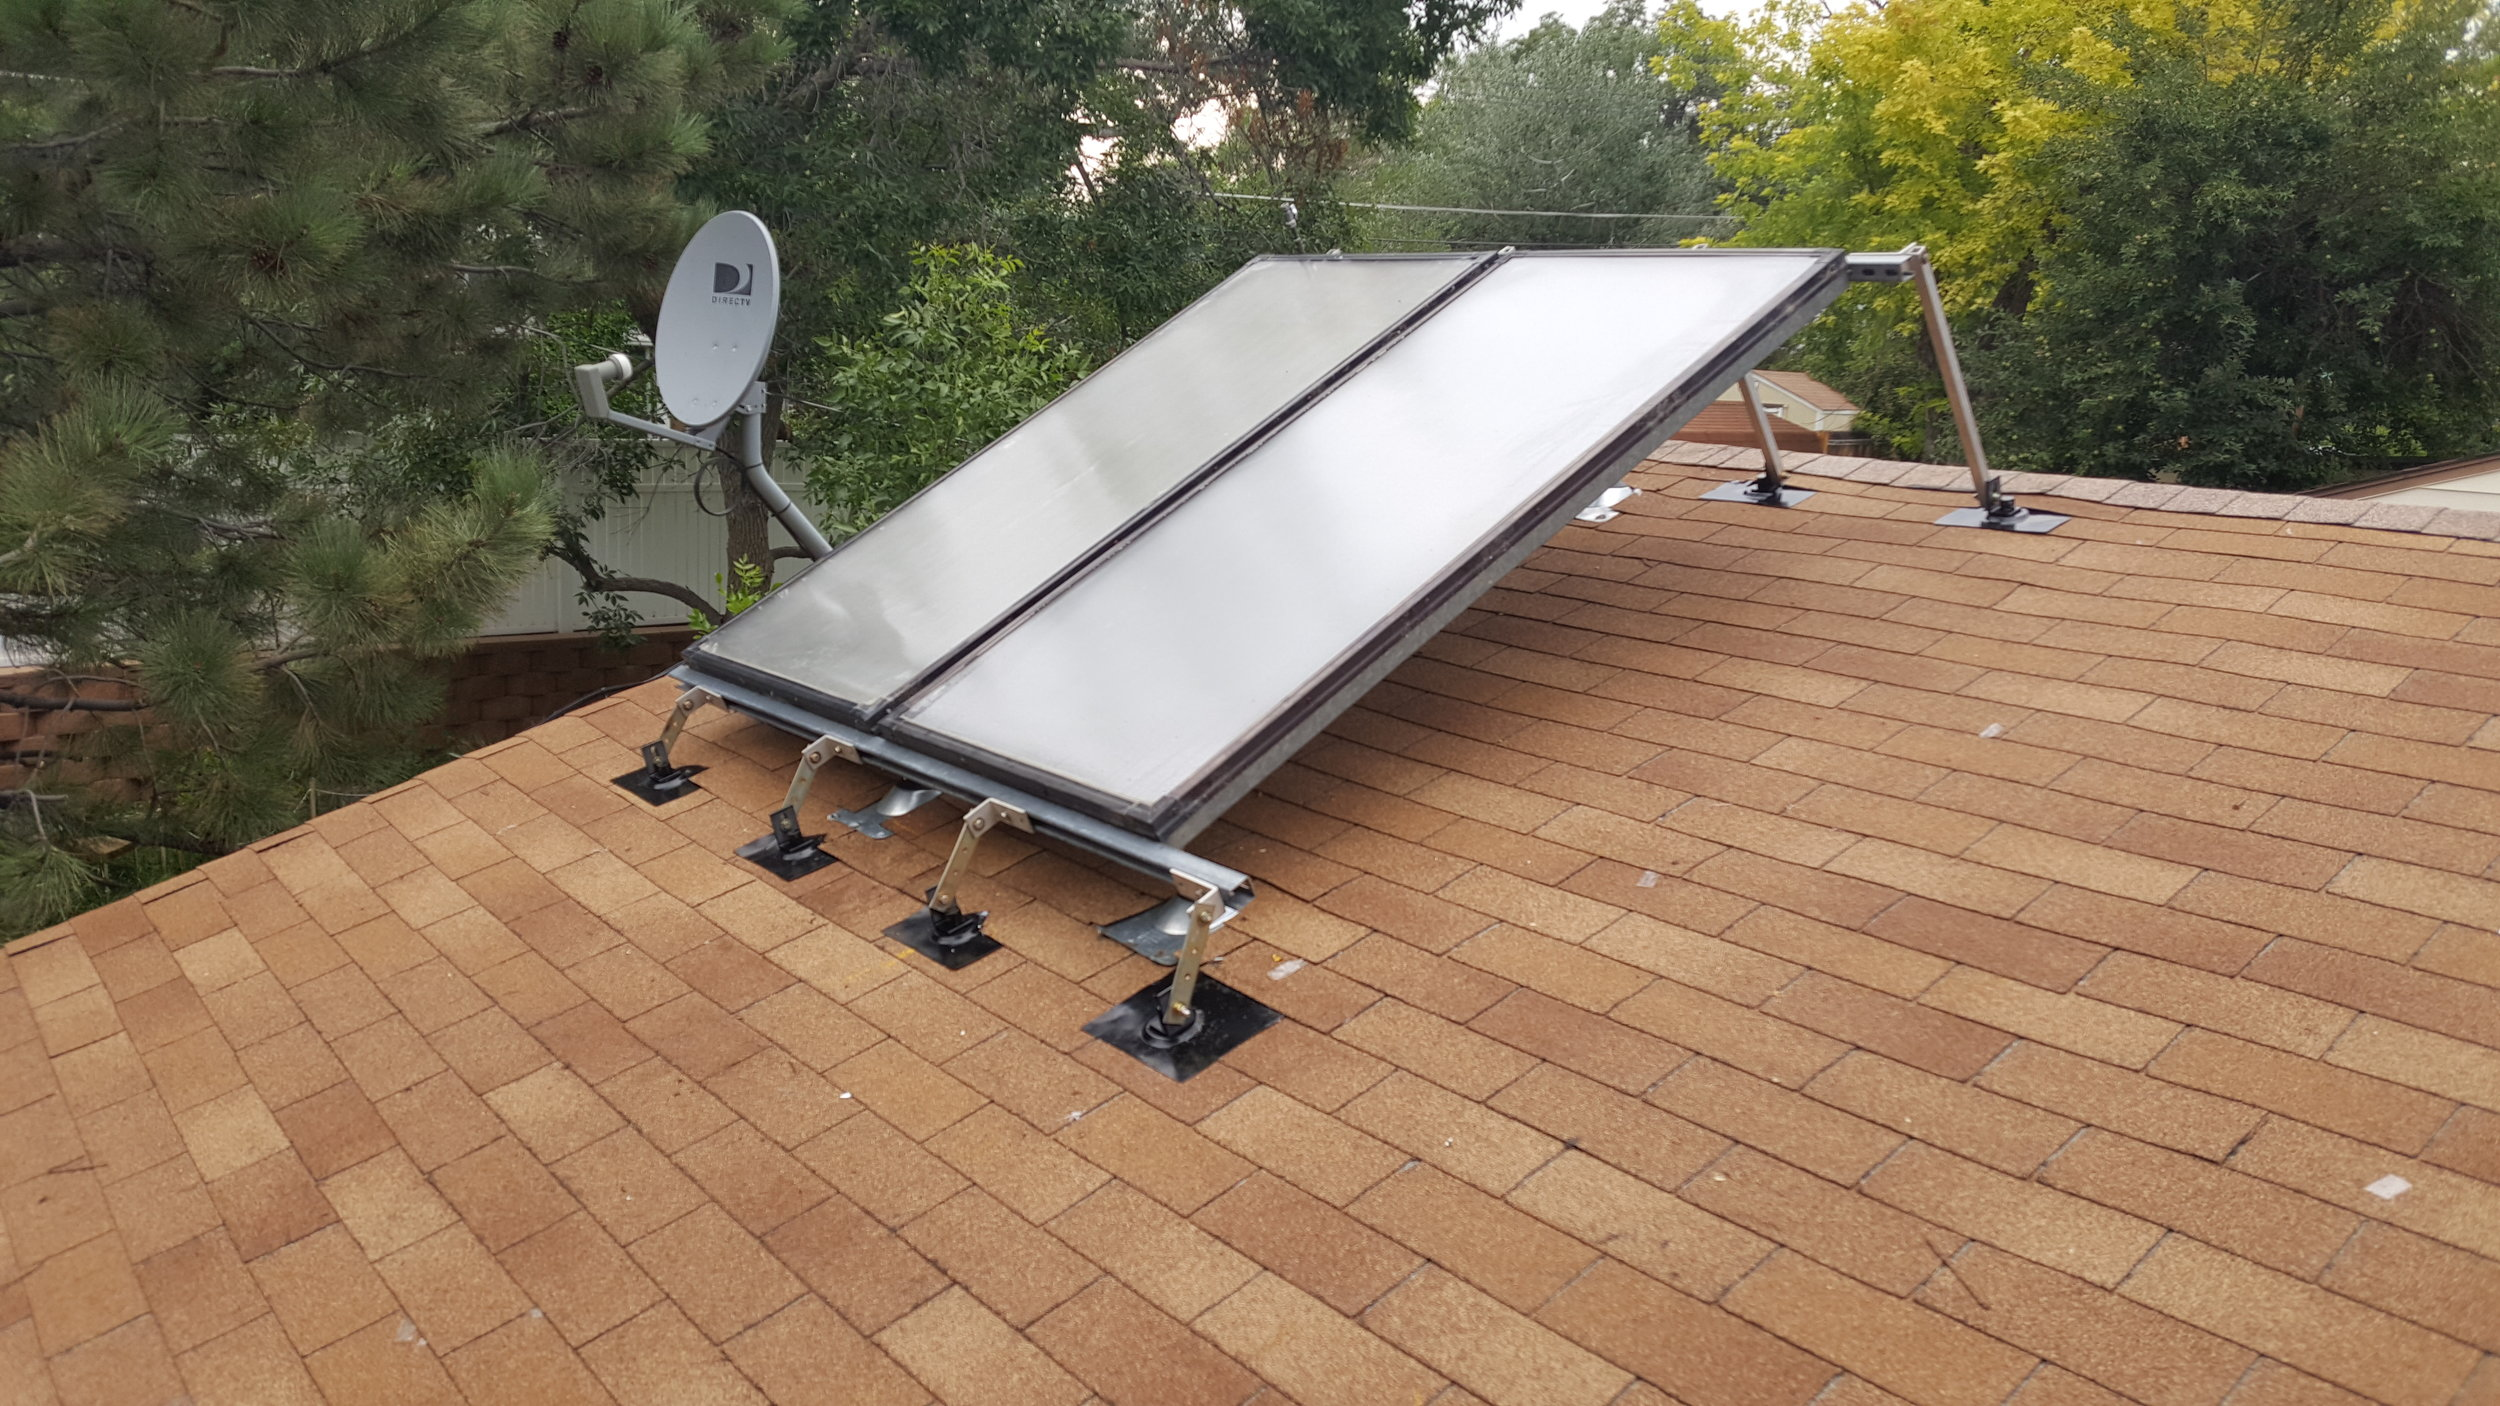 Two solar hot water panels in Broomfield, Colorado